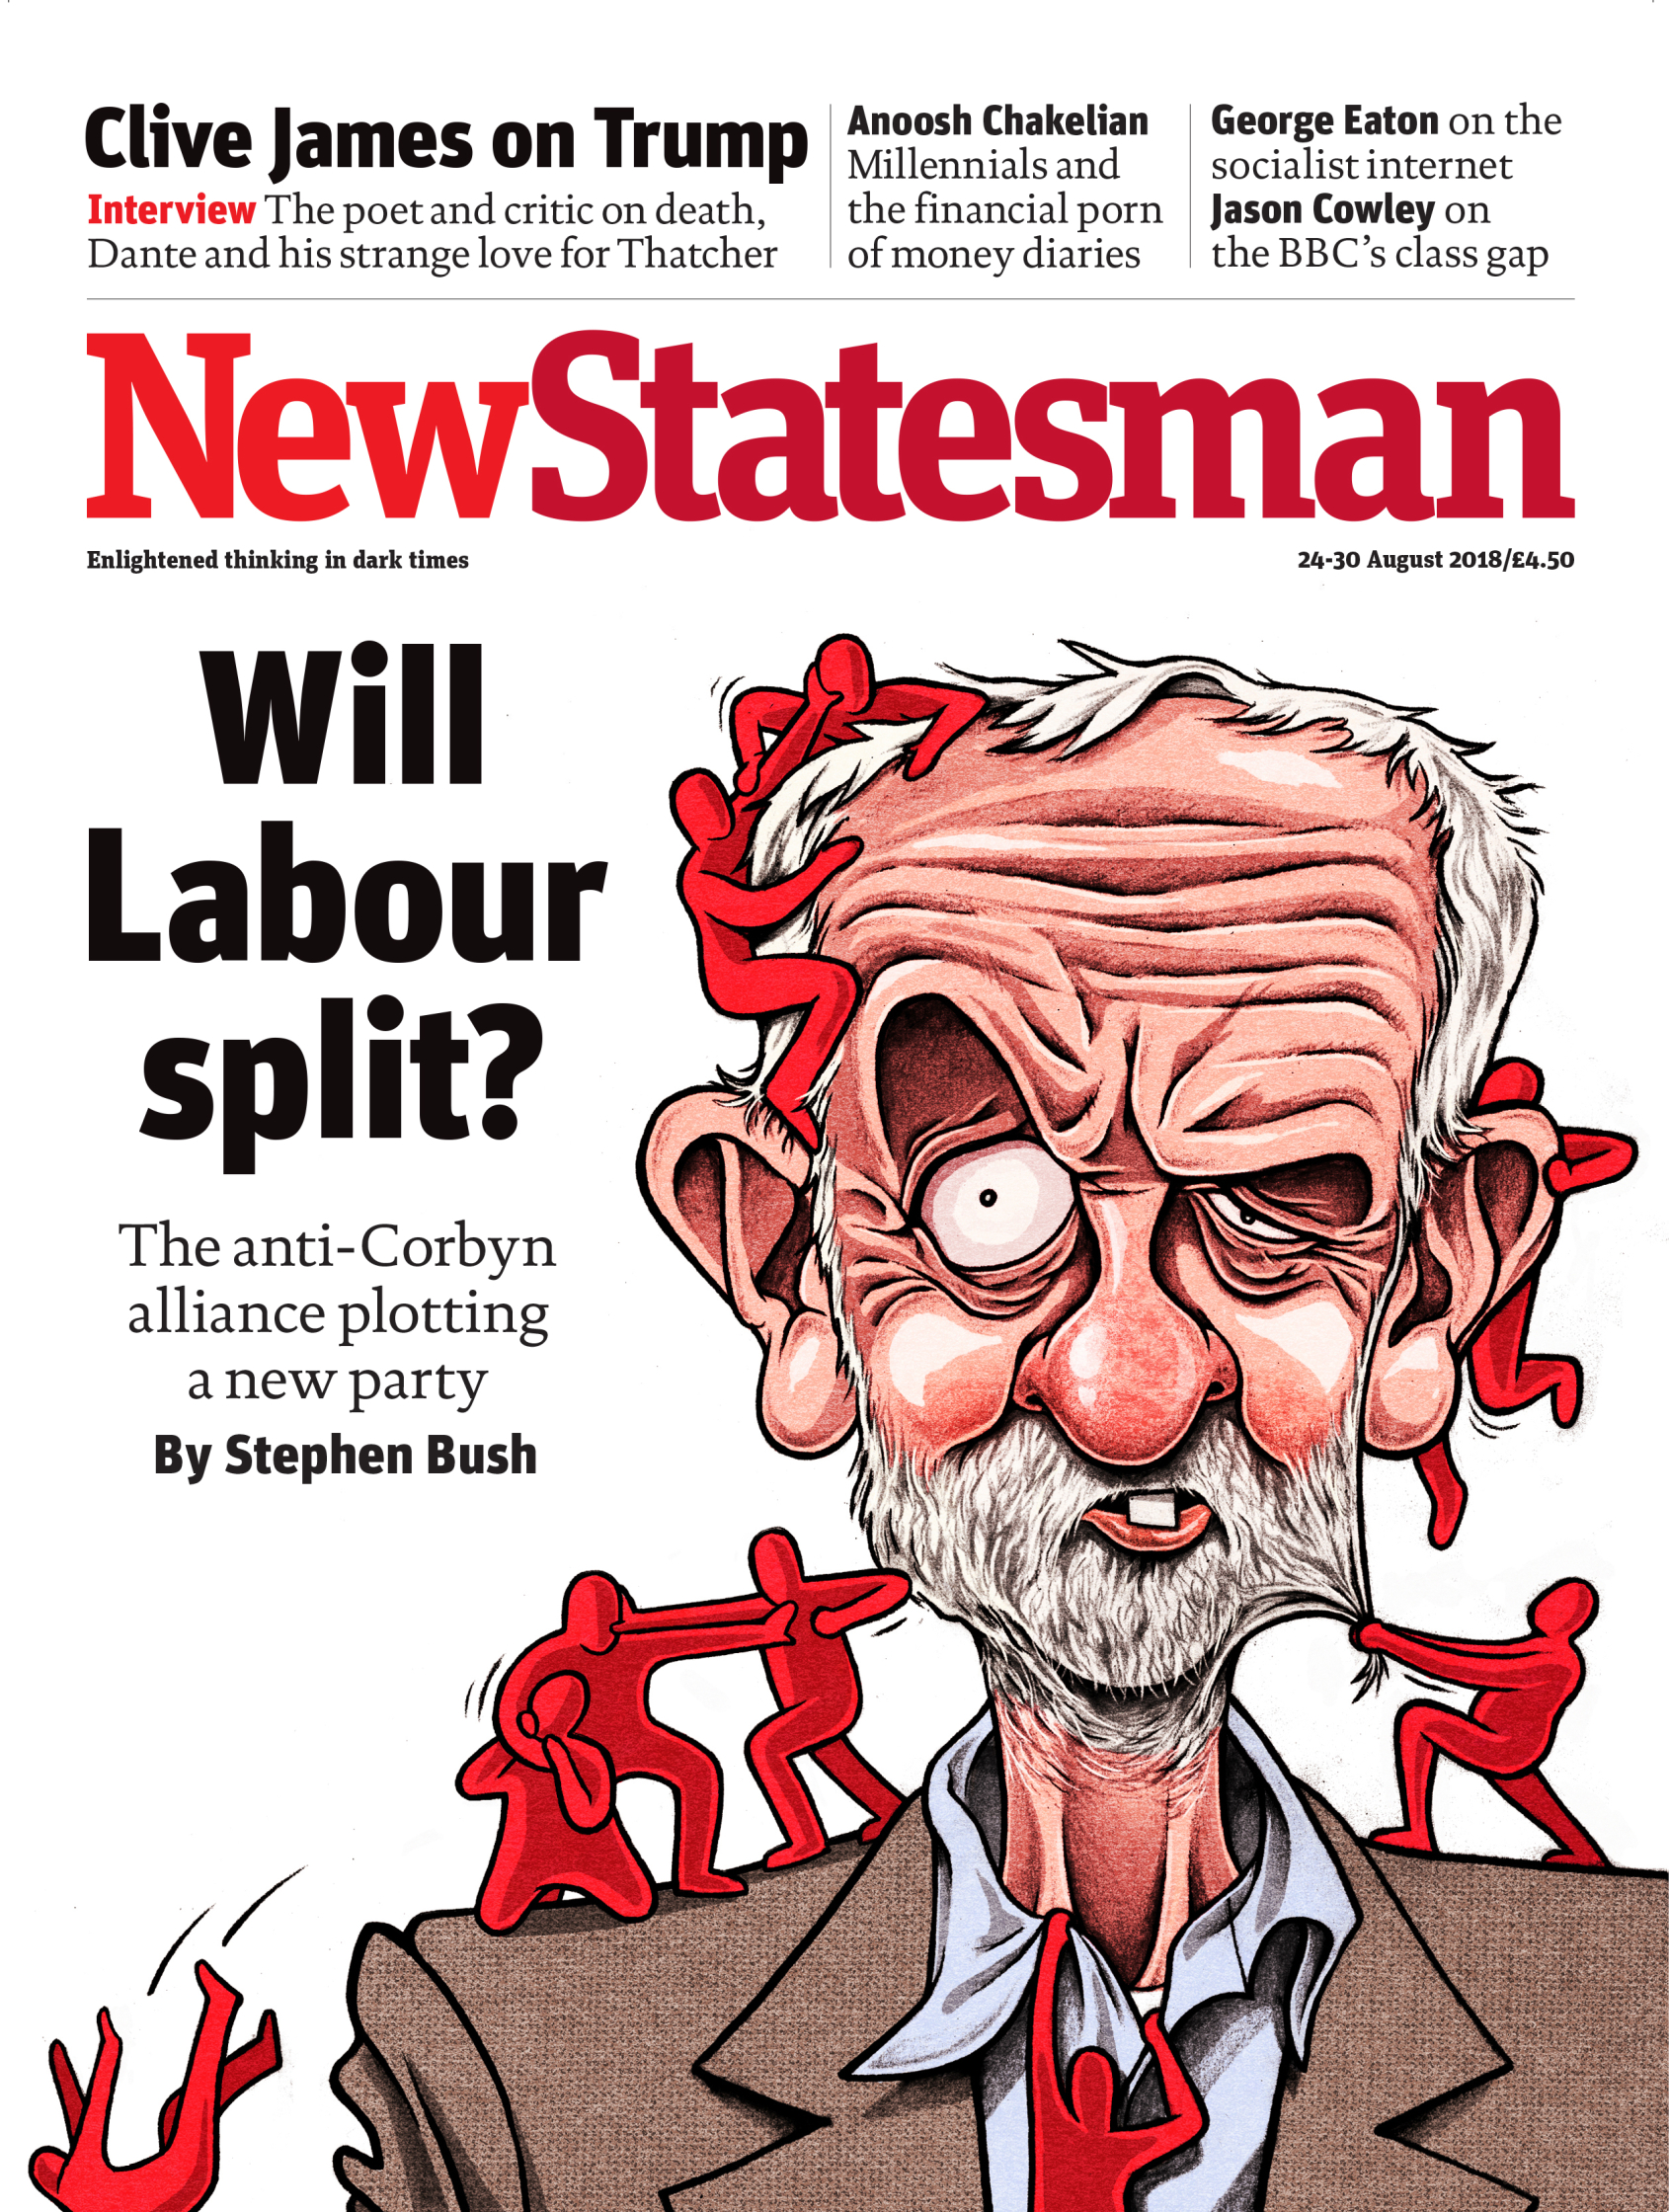 NewStatesman 24-30 Aug 2018.jpg